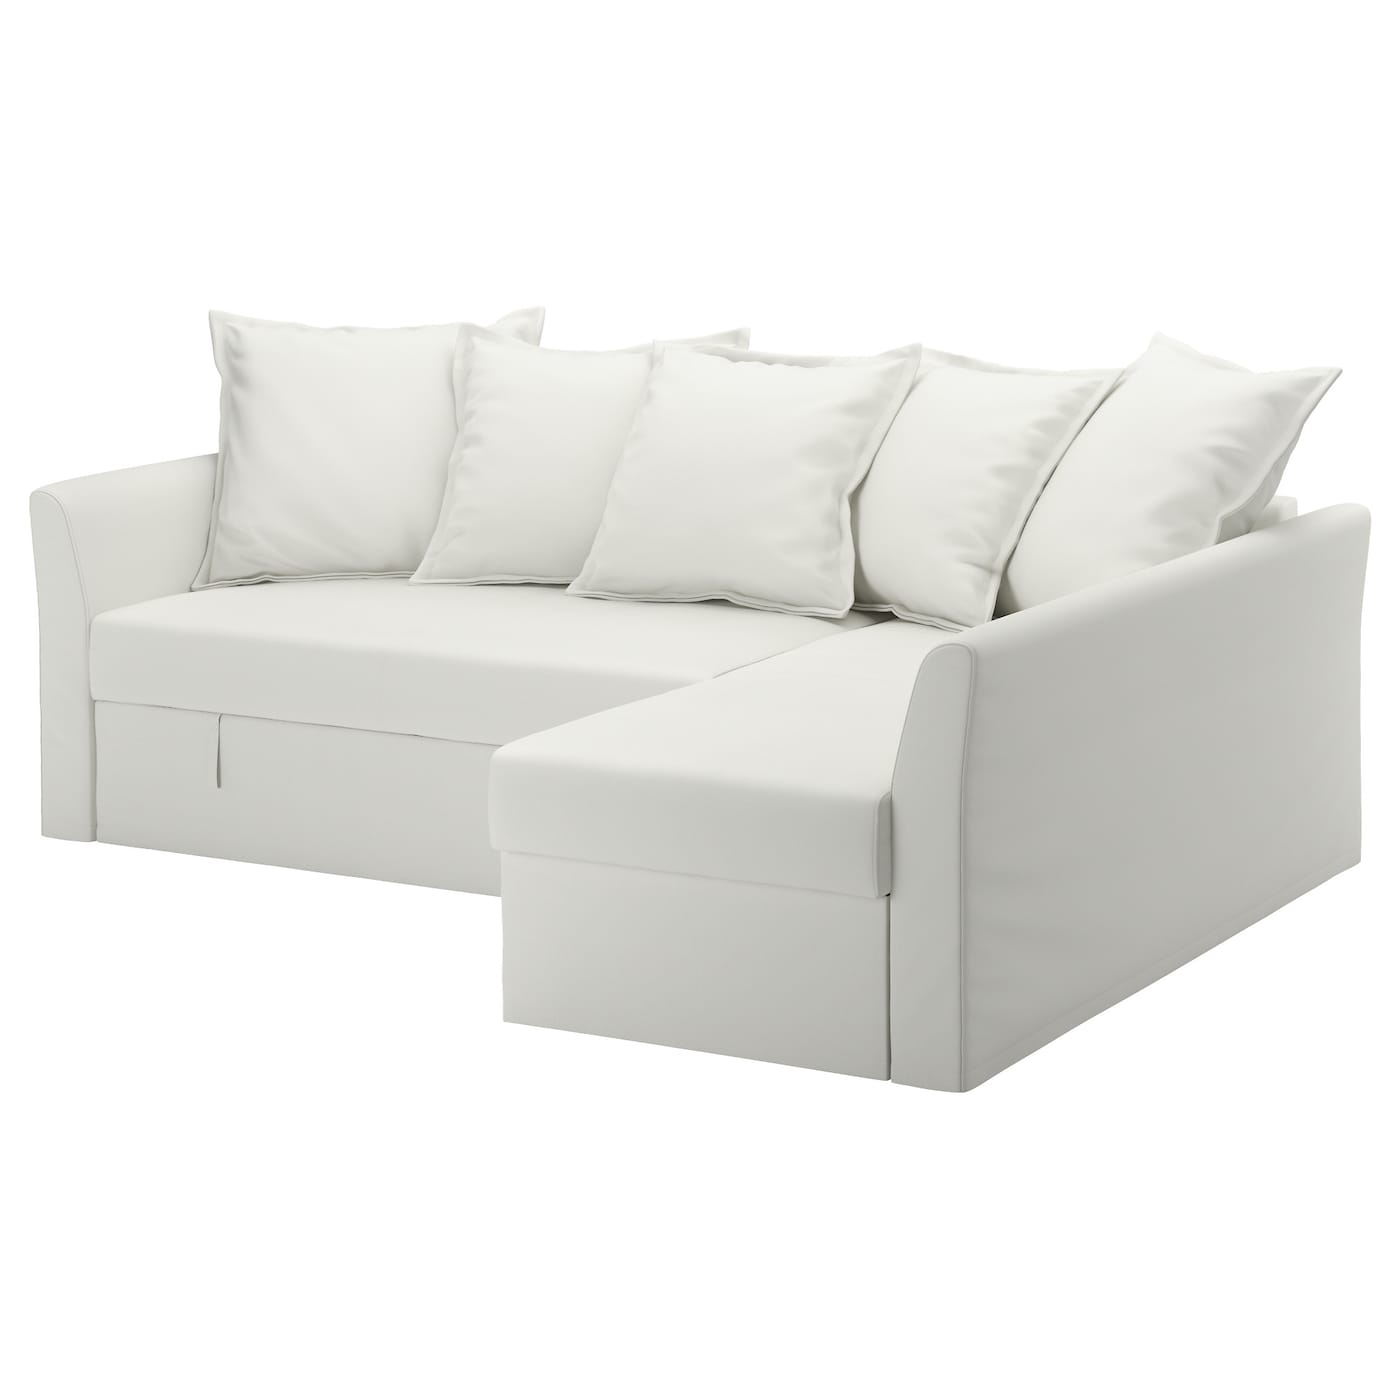 White Sofa Chair Ikea Holmsund Corner Sofa Bed Ransta White Ikea